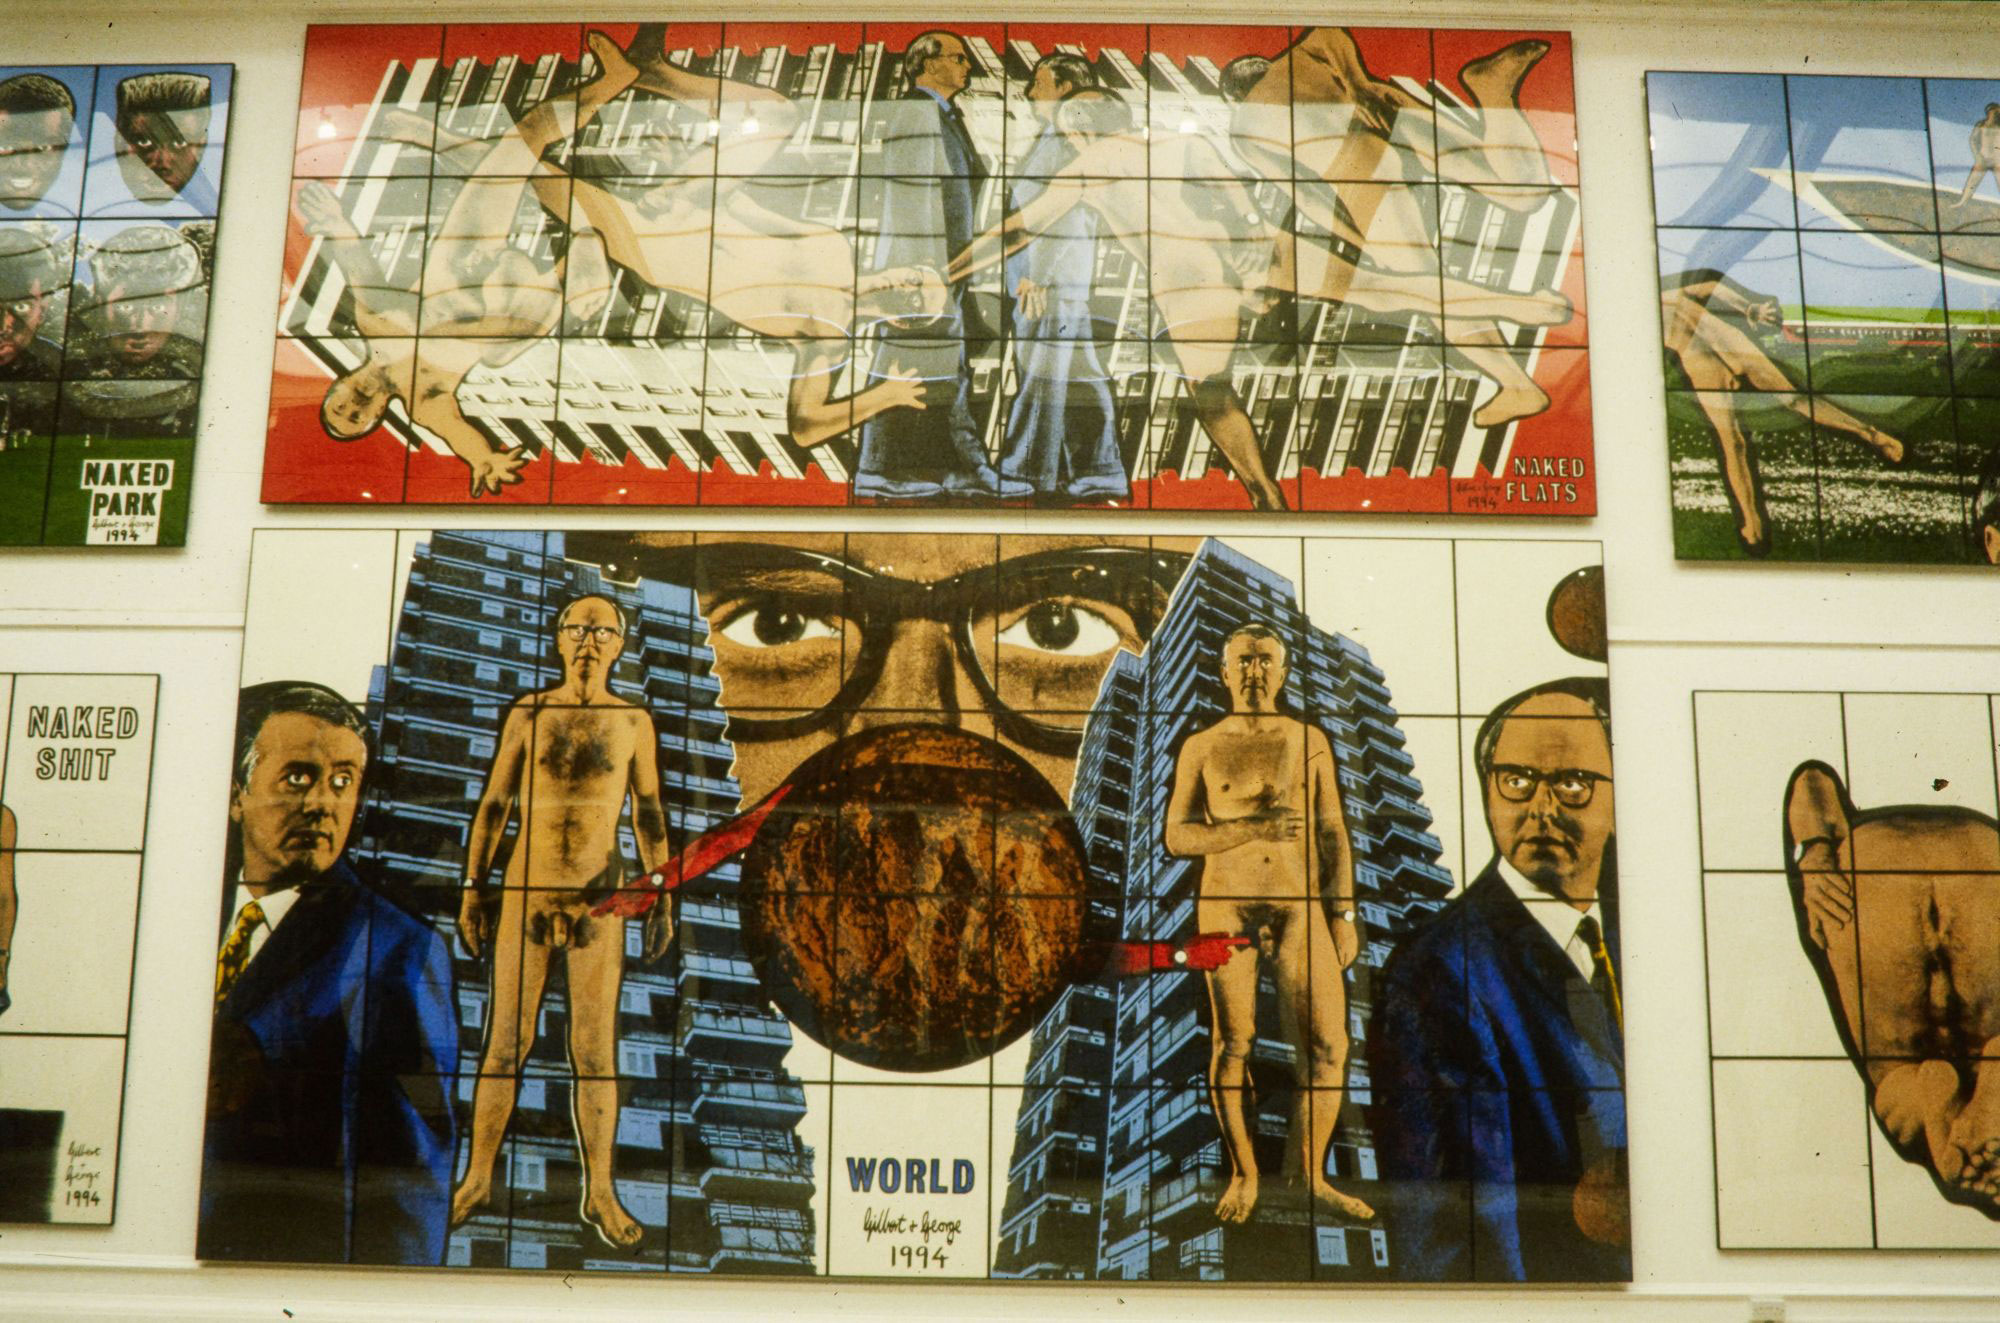 Gilbert & George - The naked shit pictures - Gesigneerd